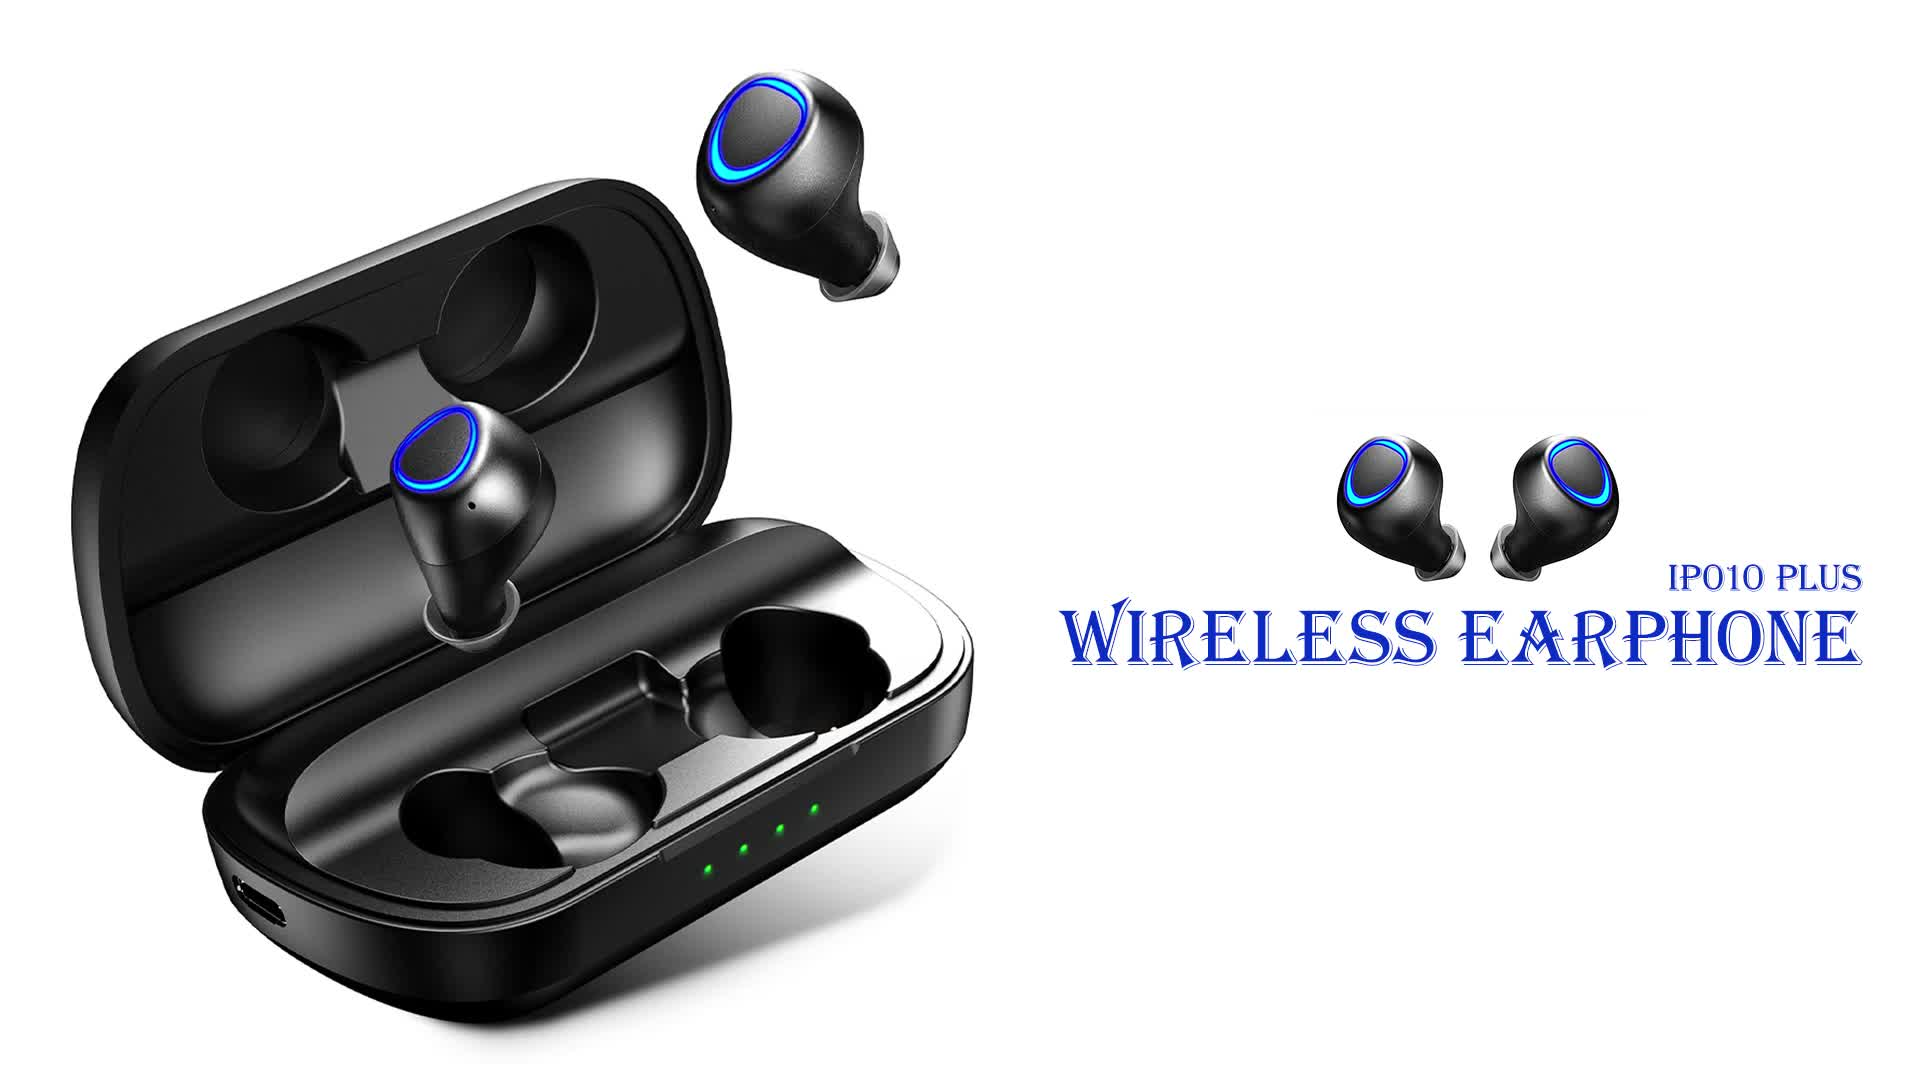 IP010 Plus Headphone CE ROHS FCC Certified IPX7 Wireless Earphone with Design Patent